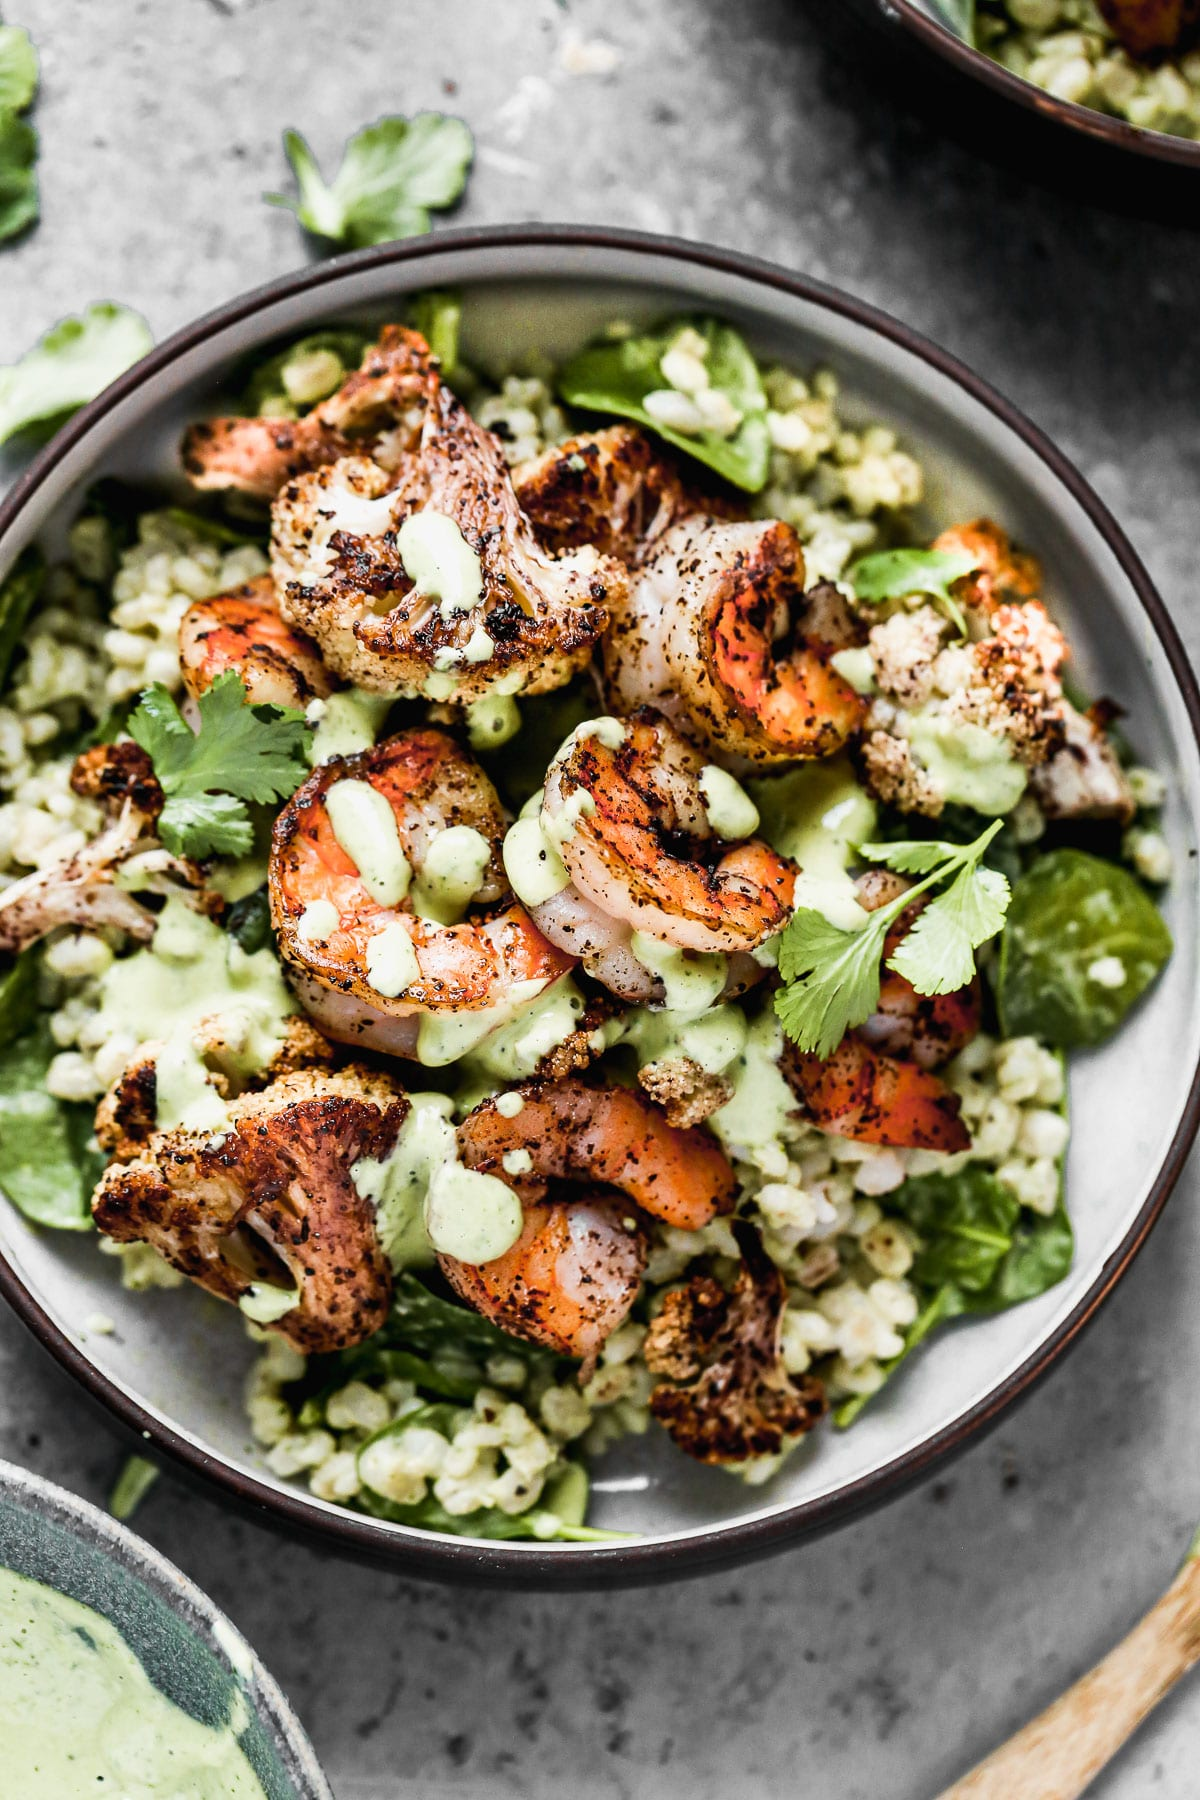 Nutty barley tossed in a zippy green tahini sauce, lemony sumac-roasted cauliflower and shrimp, and pops of crunchy pine nuts are the makings of our Green Tahini Shrimp Bowls - our new favorite way to do healthy. Make everything and serve the day of or pack it up and keep in the fridge to serve thought the week.